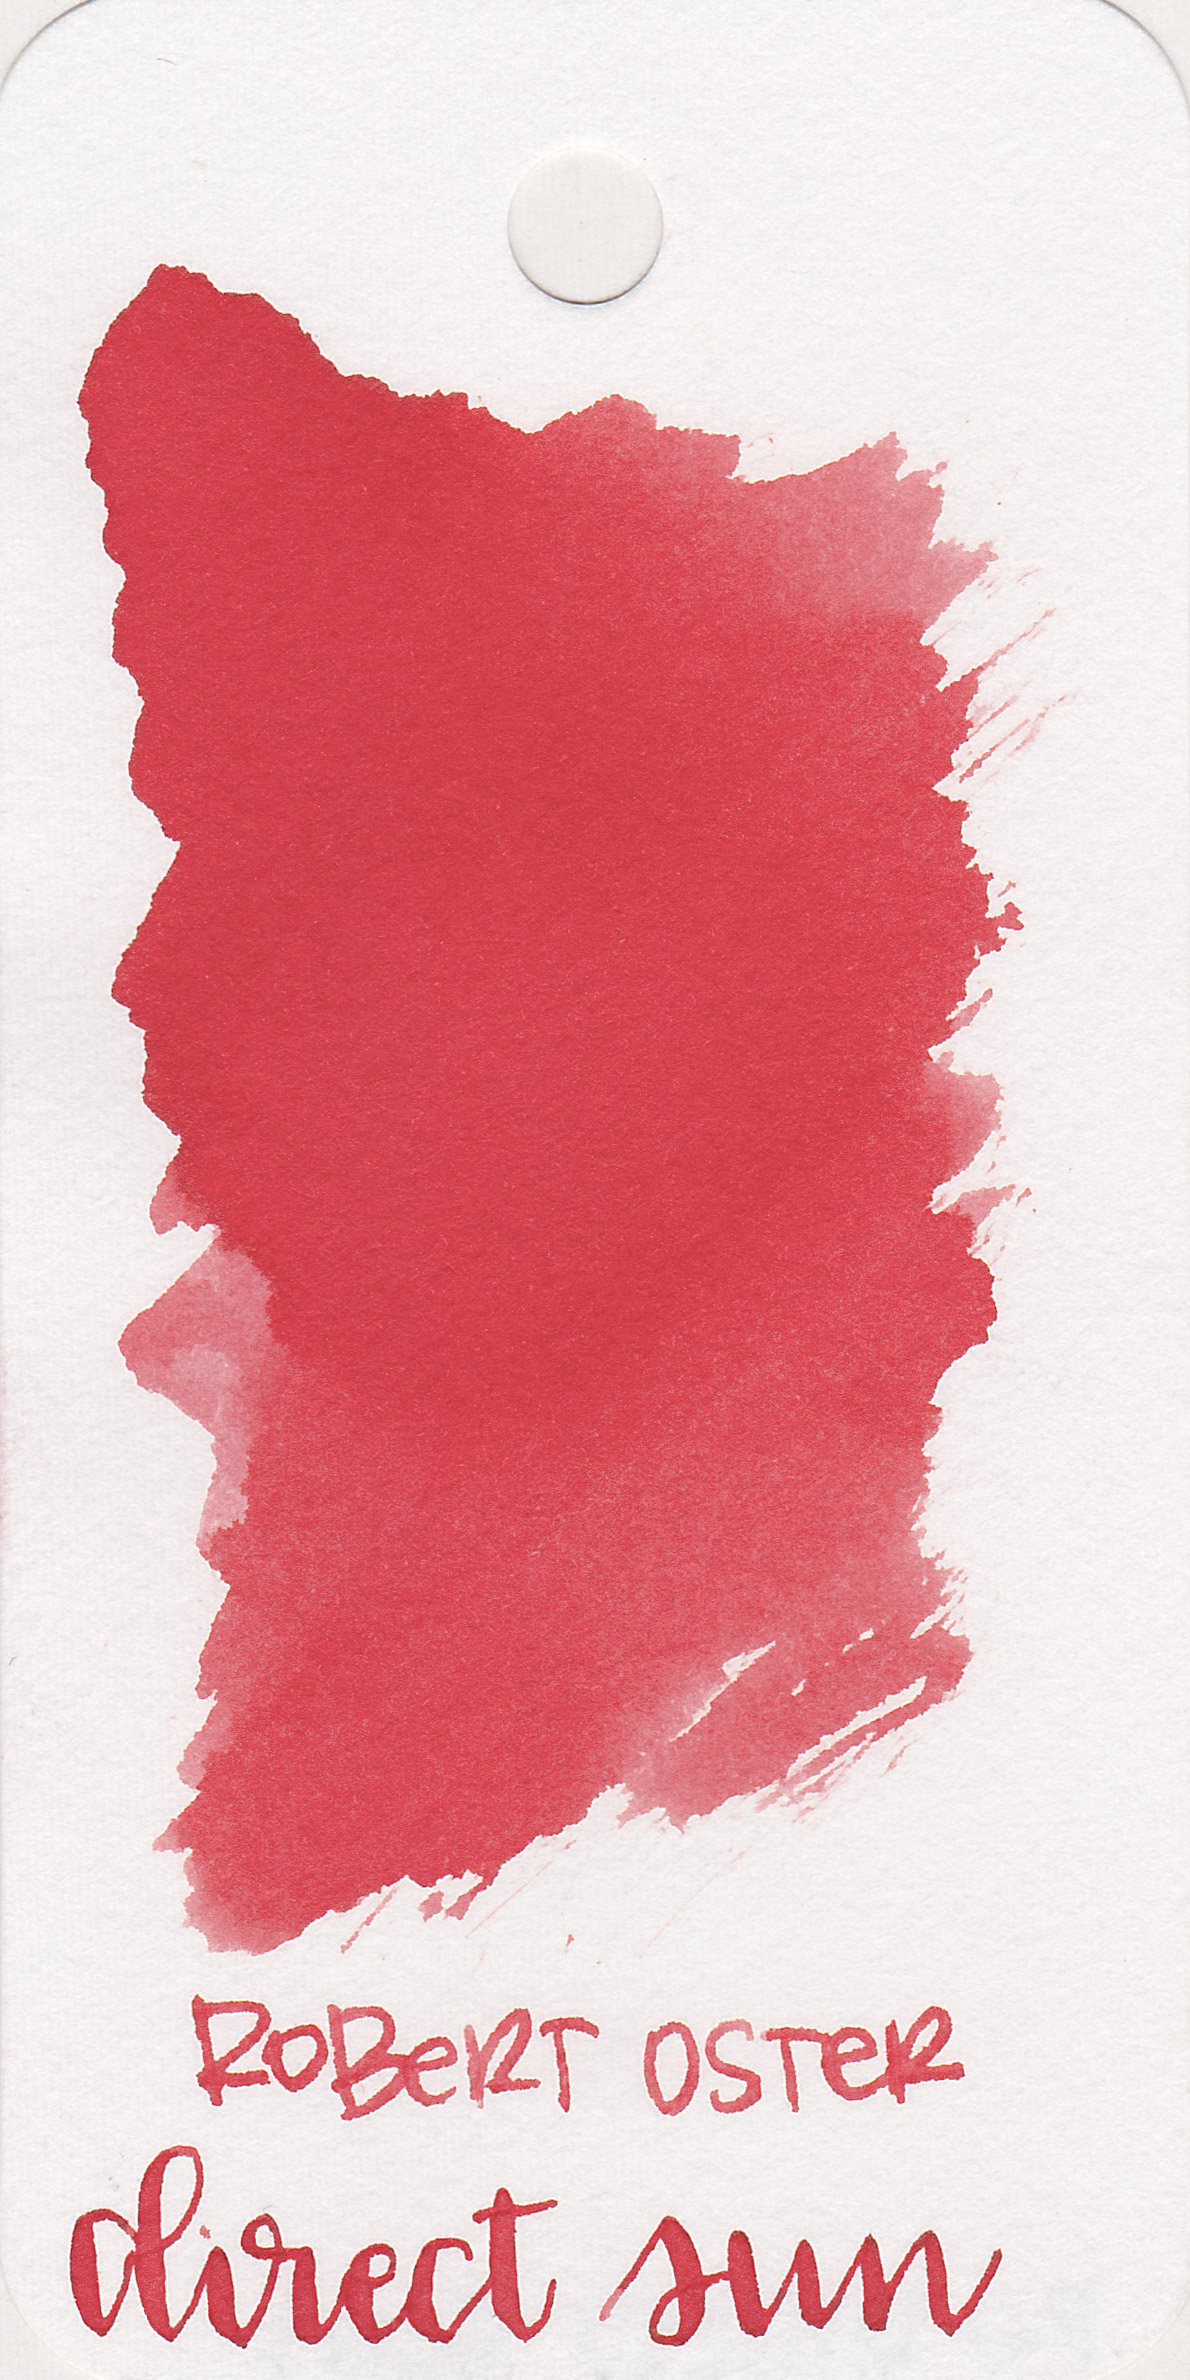 The color: - Direct Sun is a lighter, less saturated red.